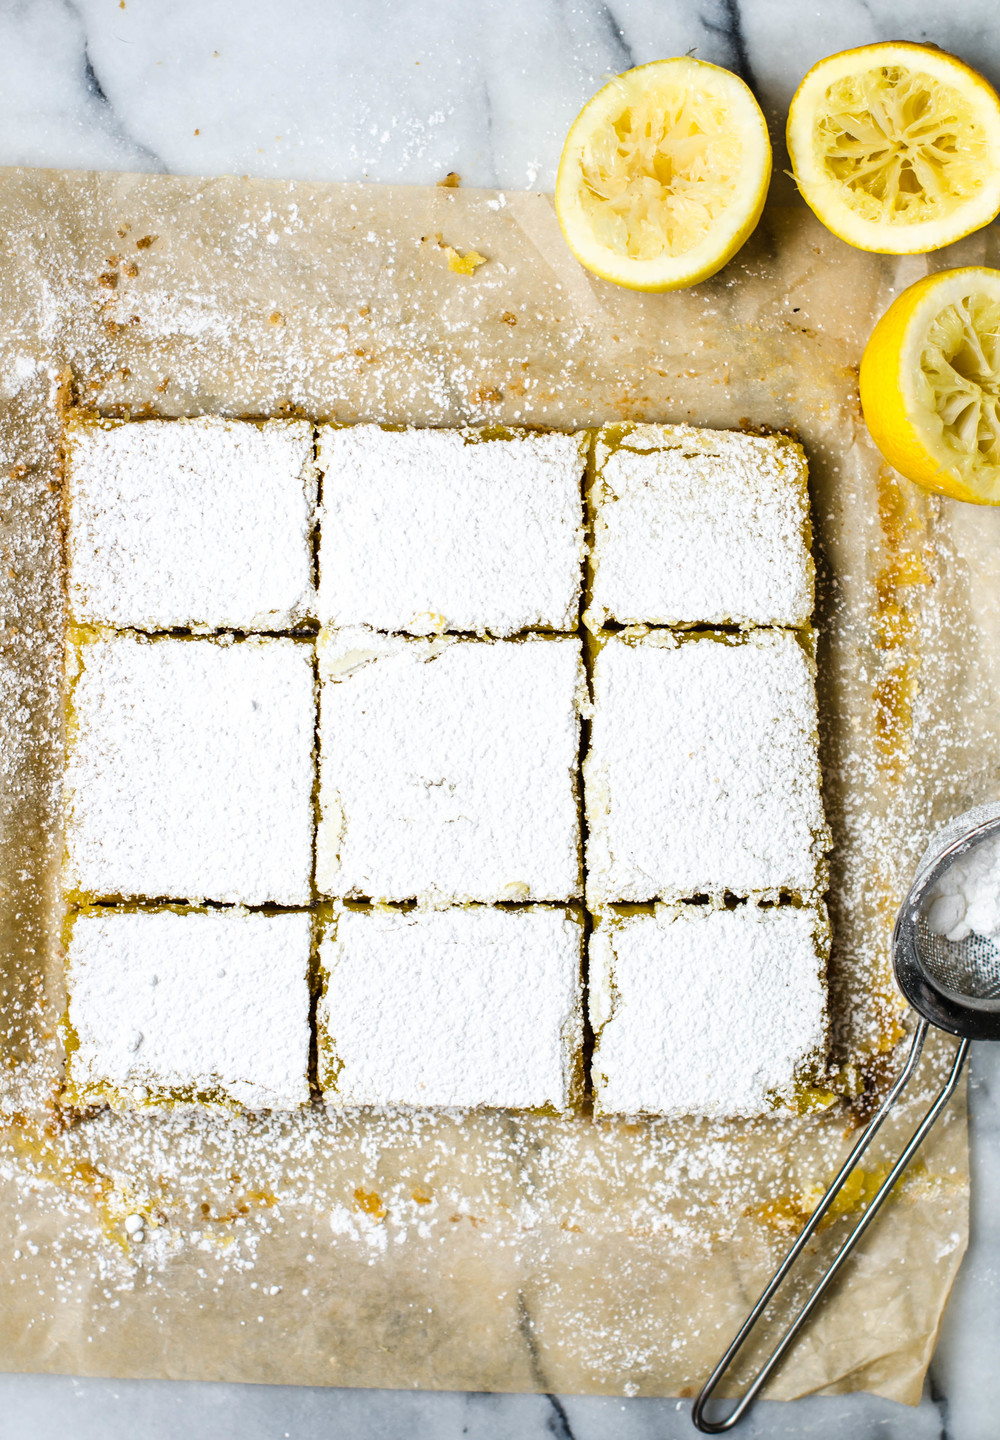 ROSE & IVY Journal Lemon Bars with Browned Butter Shortbread Crust